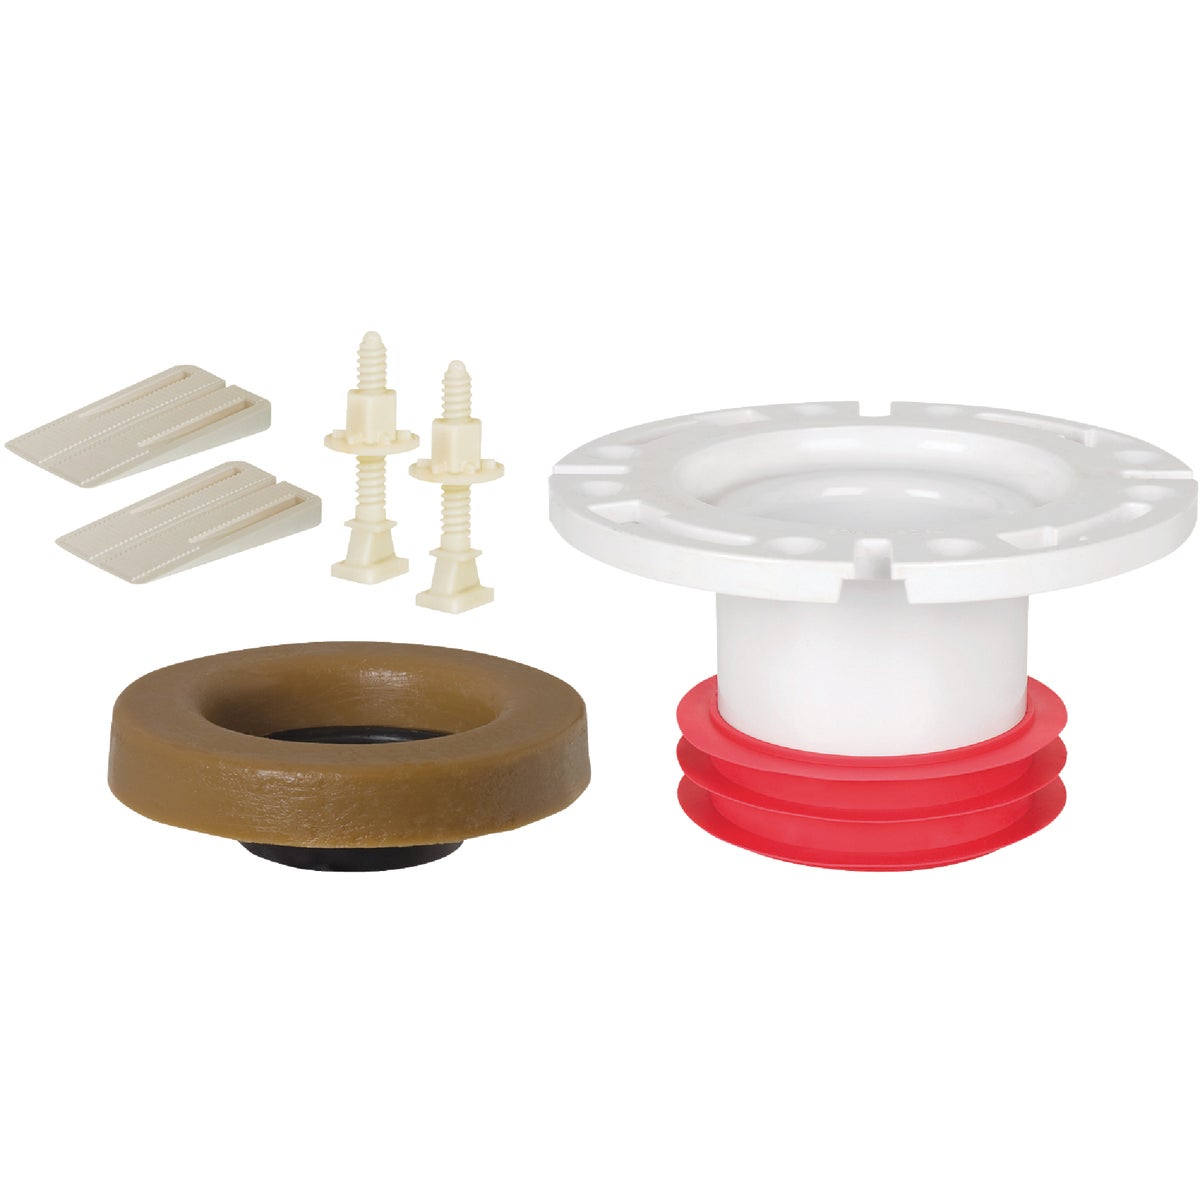 PVC FLANGE REPAIR KIT - 887-GPTMK by Sioux Chief Mfg